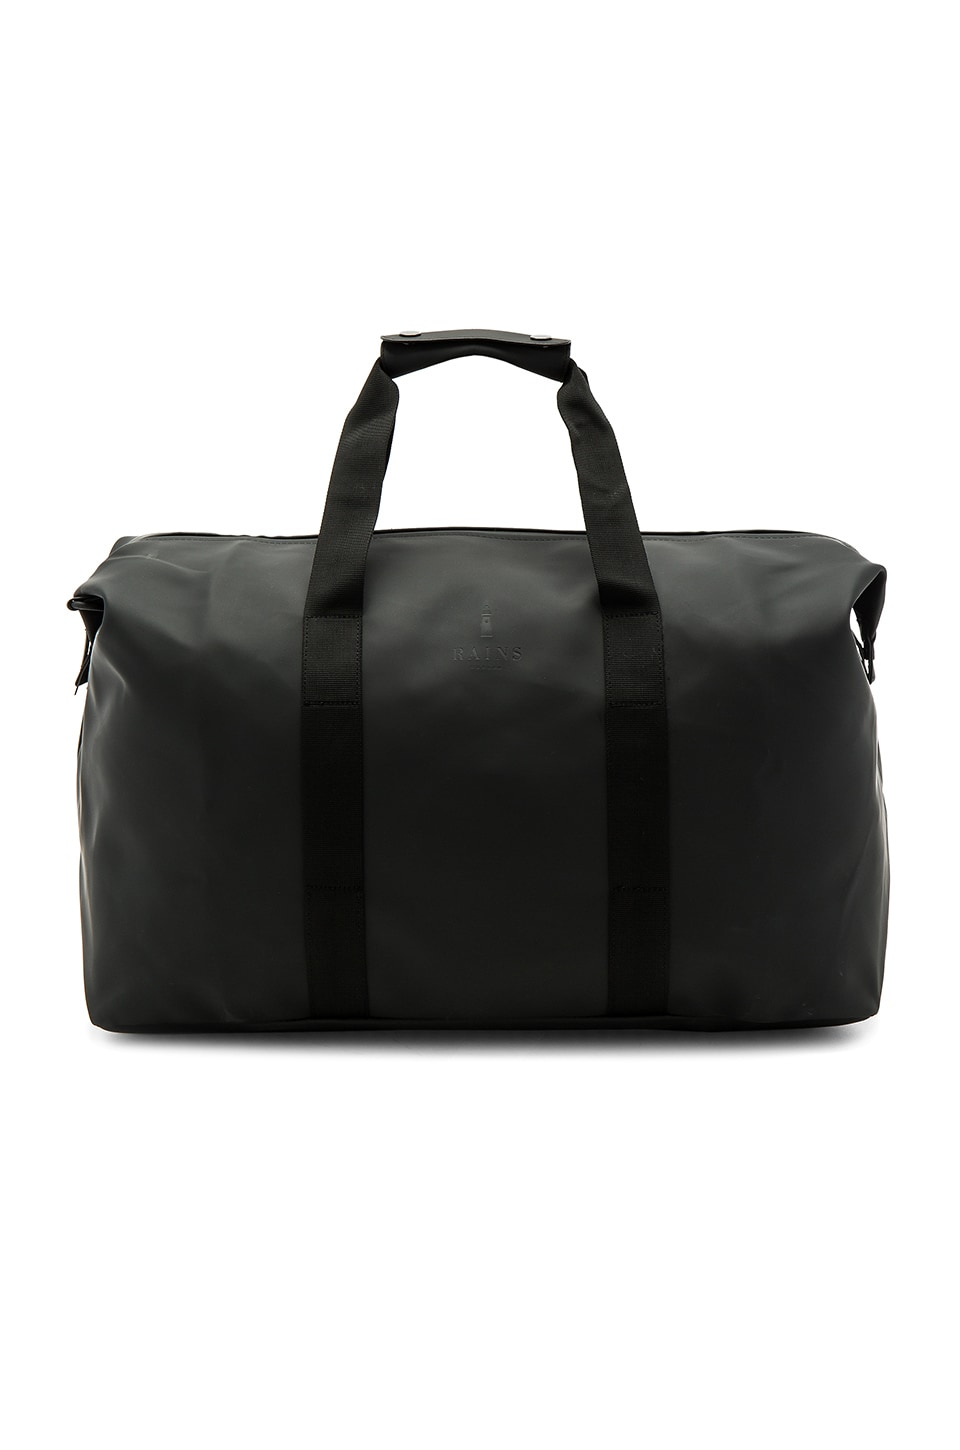 Rains Weekend Bag in Black